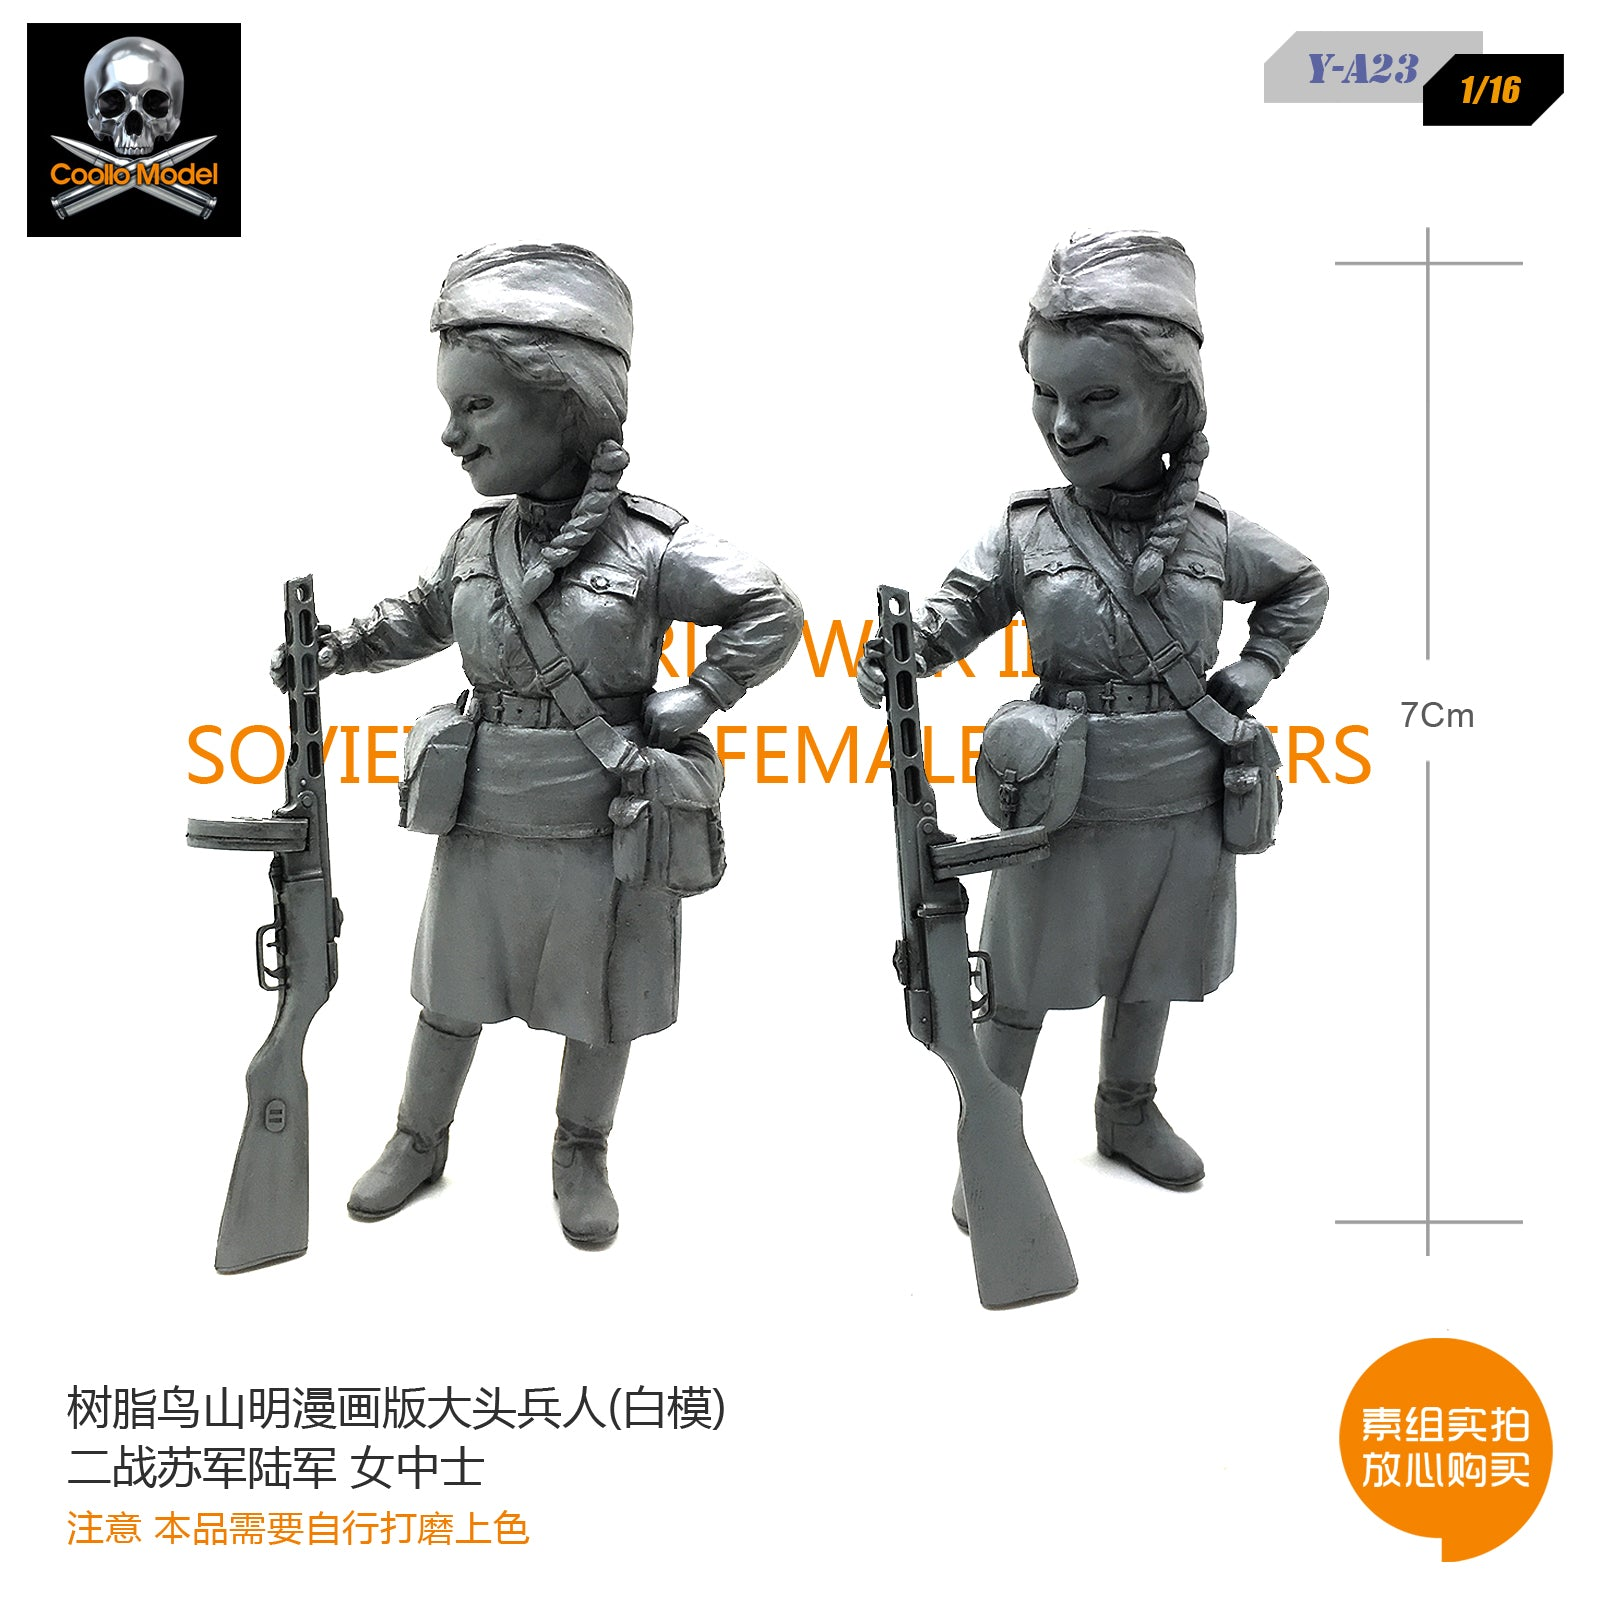 1/16 resin soldiers birds mountain Ming cartoon version of World War II Soviet soldiers in the soldiers element model Y-A23